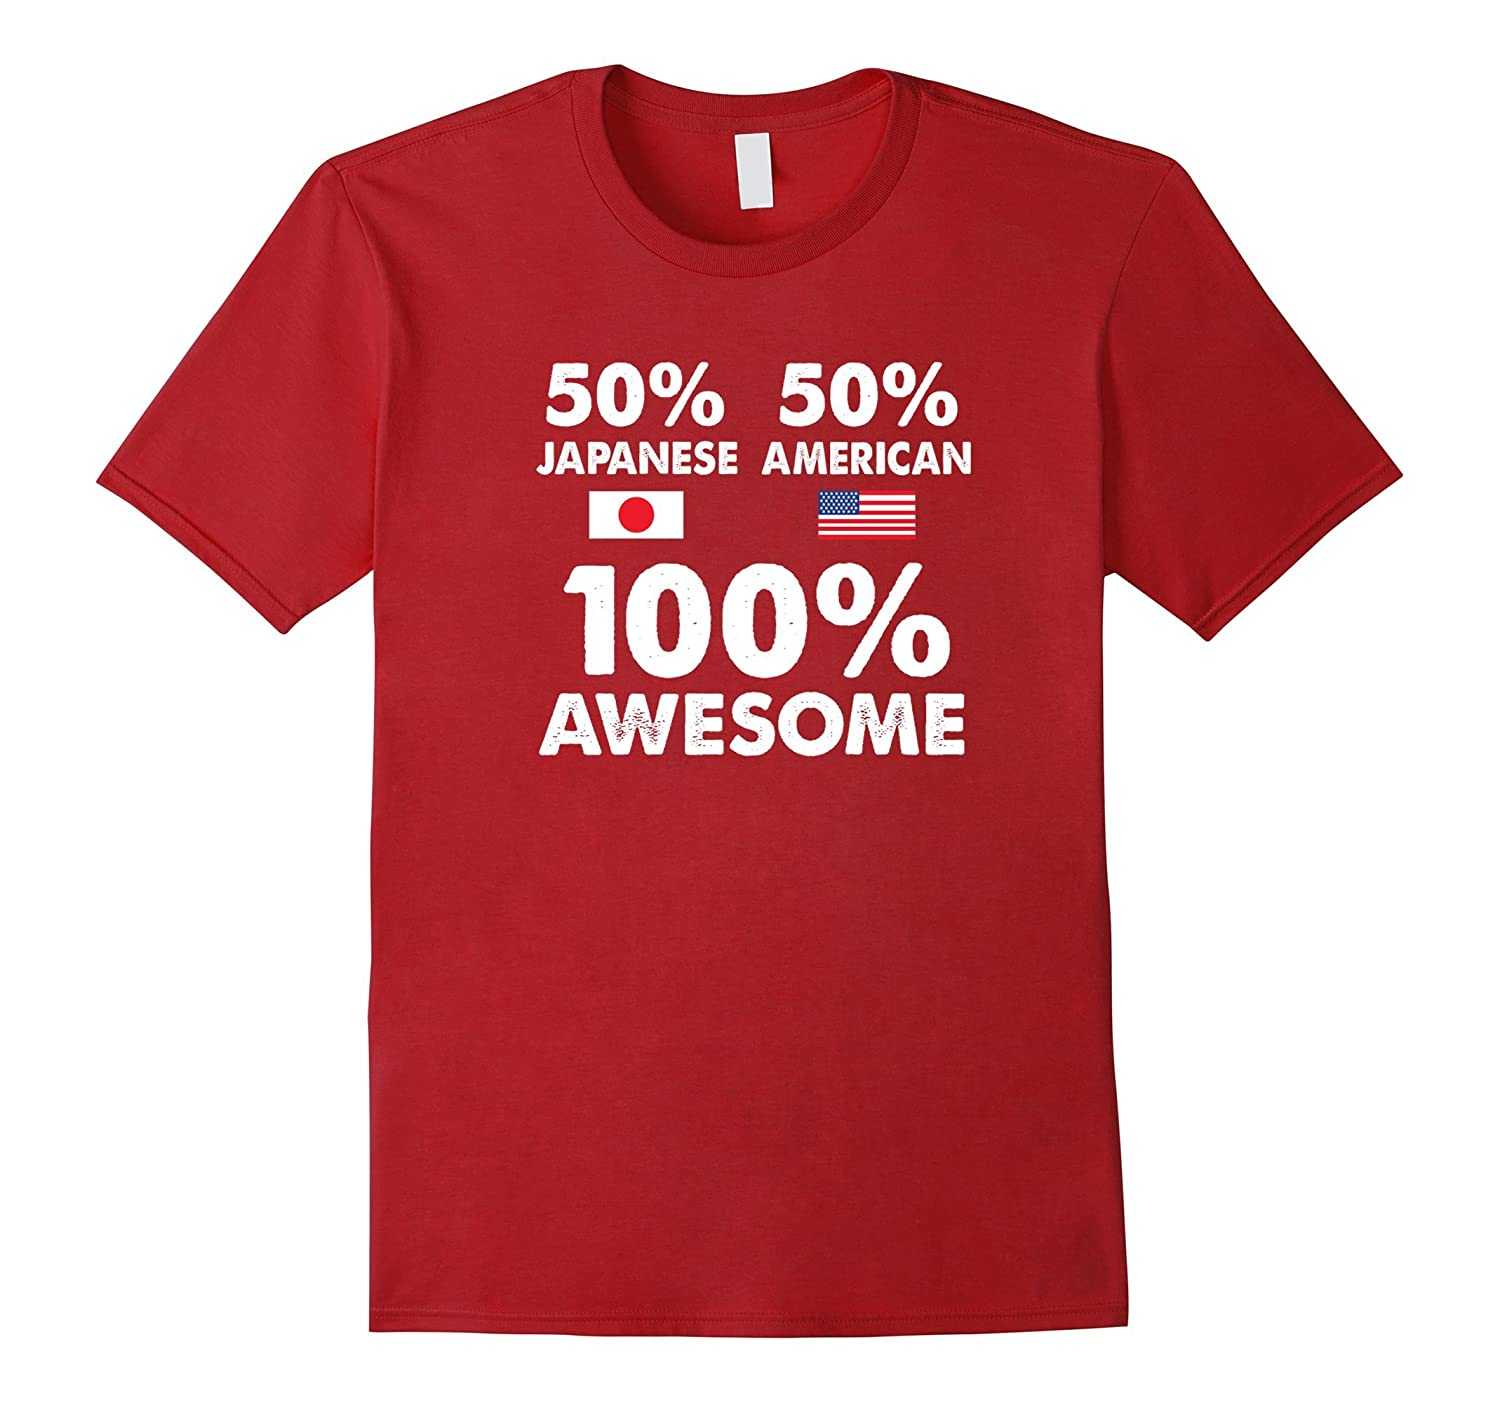 50% Japanese 50% American 100% Awesome Funny Shirt